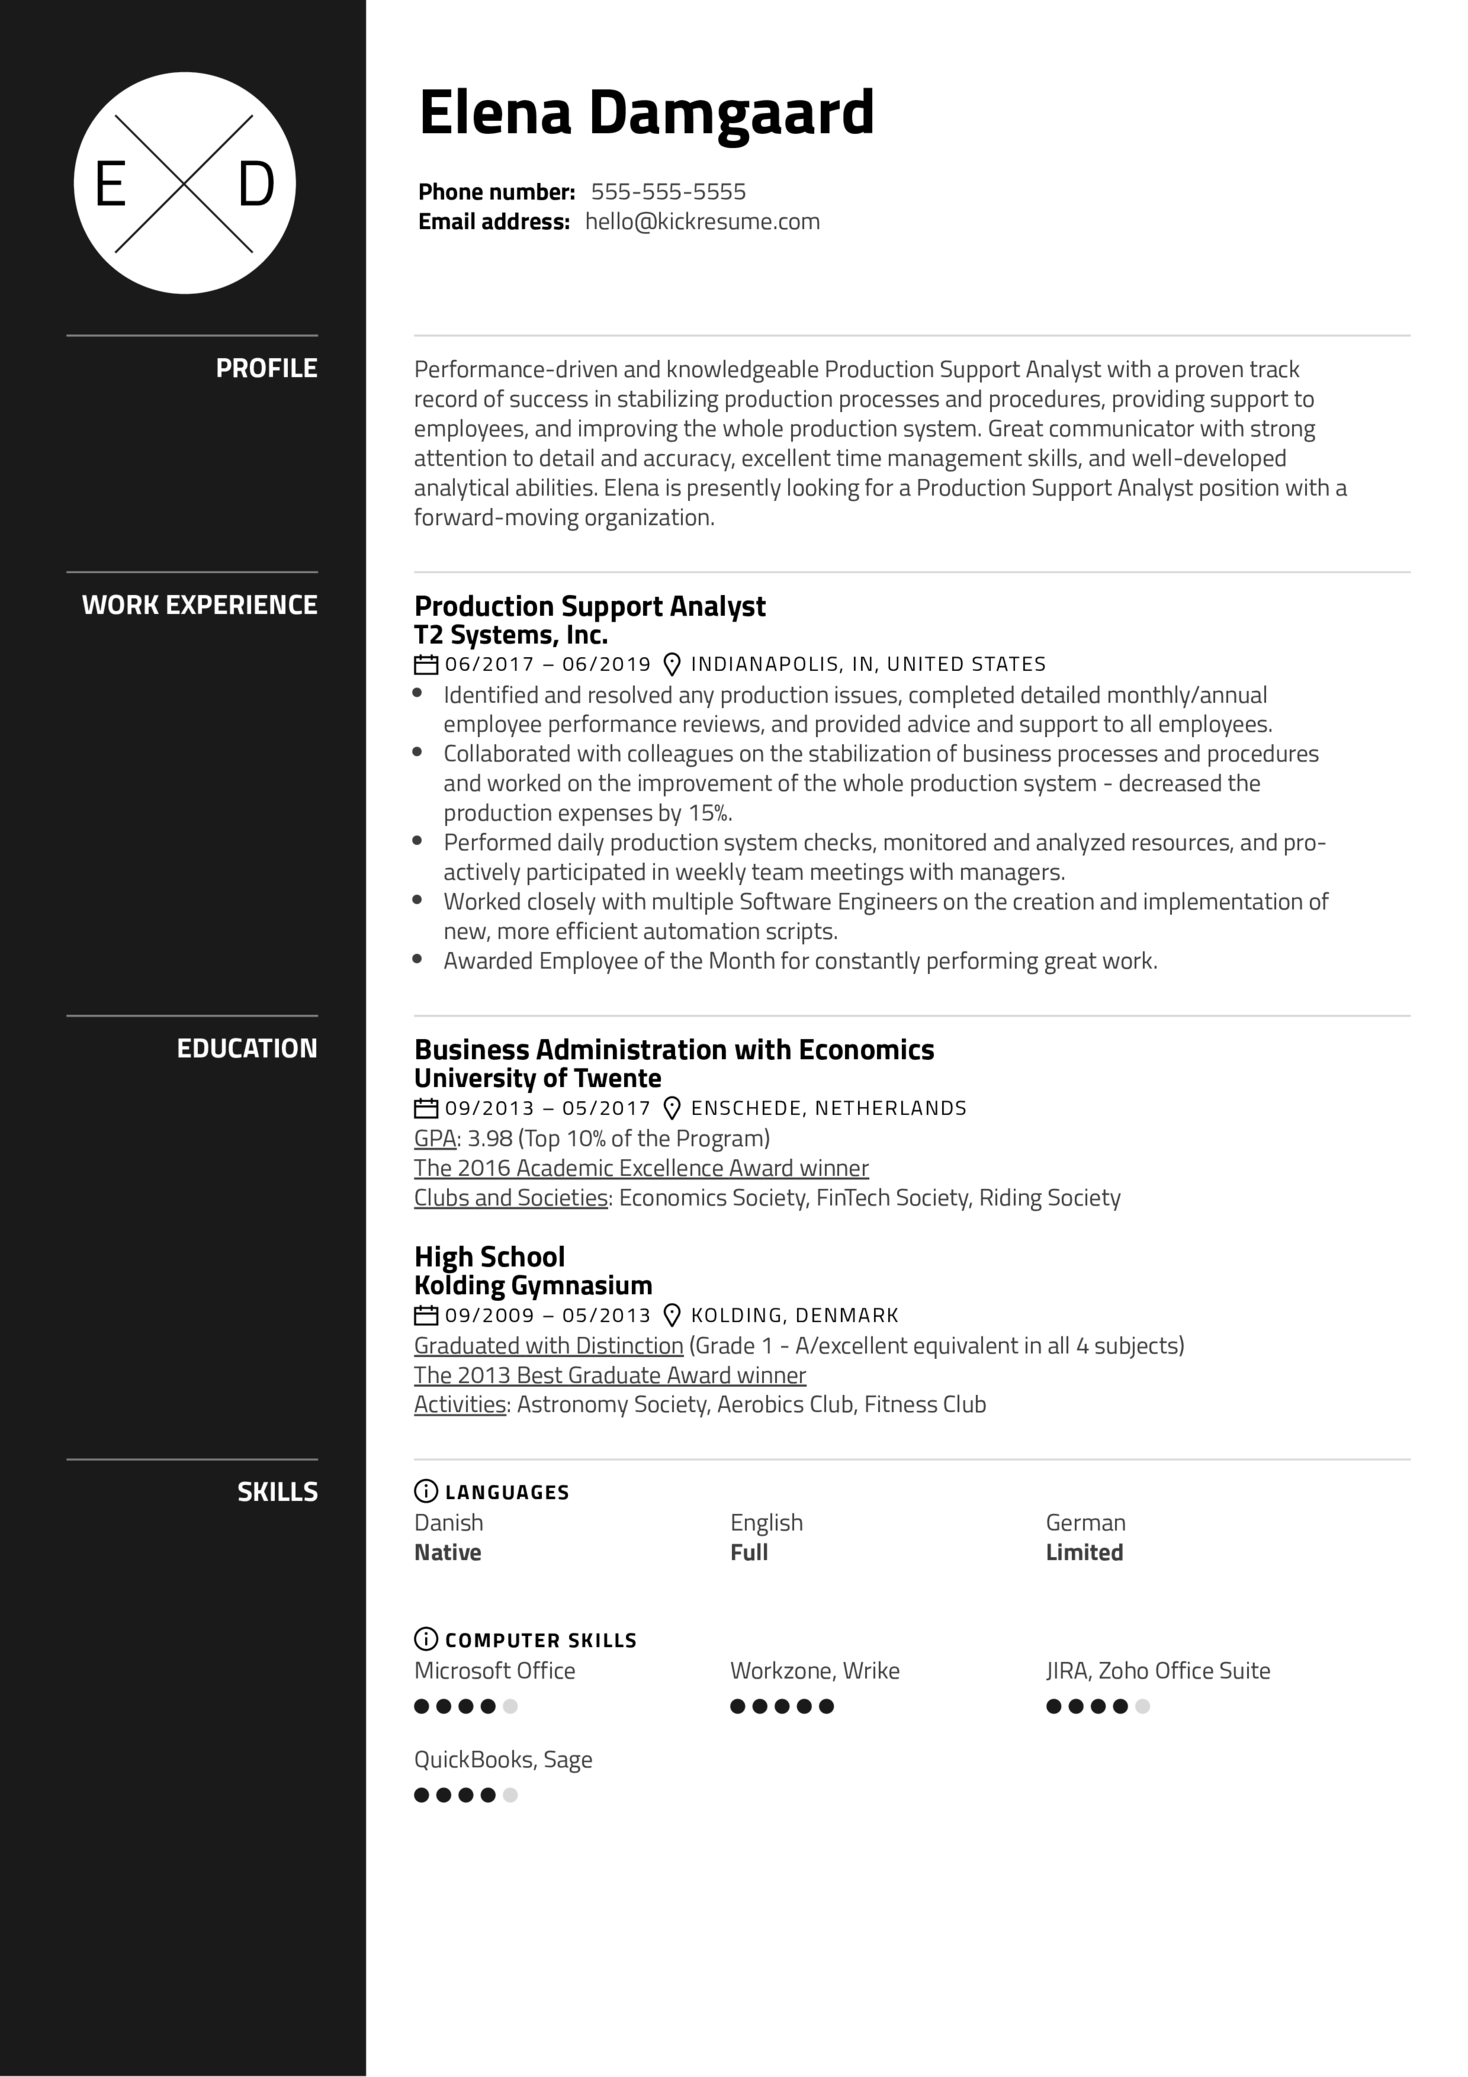 Production Support Analyst Resume Example (časť 1)